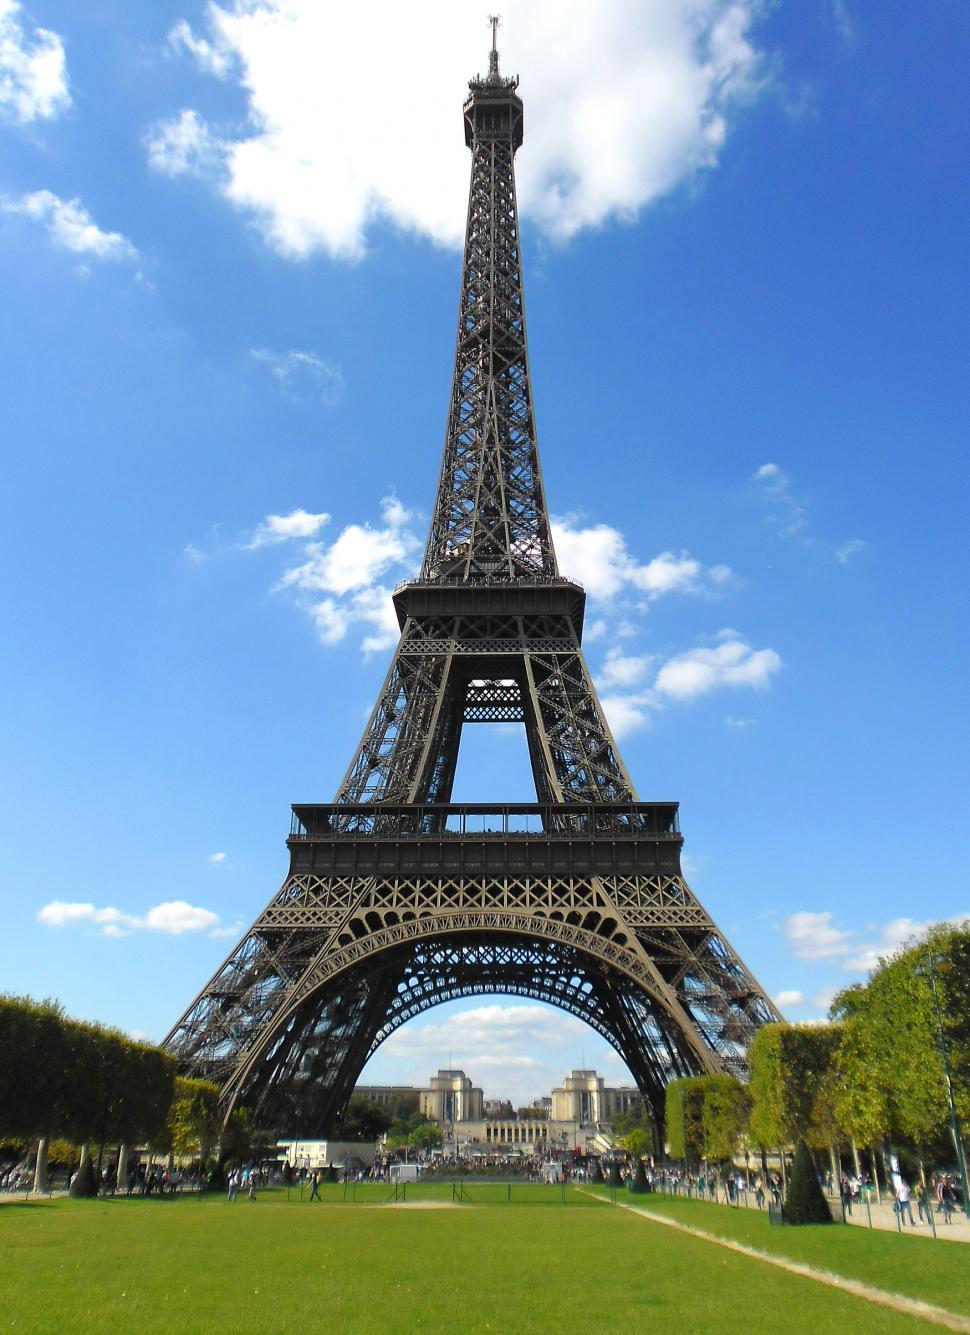 Download Free Stock HD Photo of The Eiffel Tower in Paris - France Online